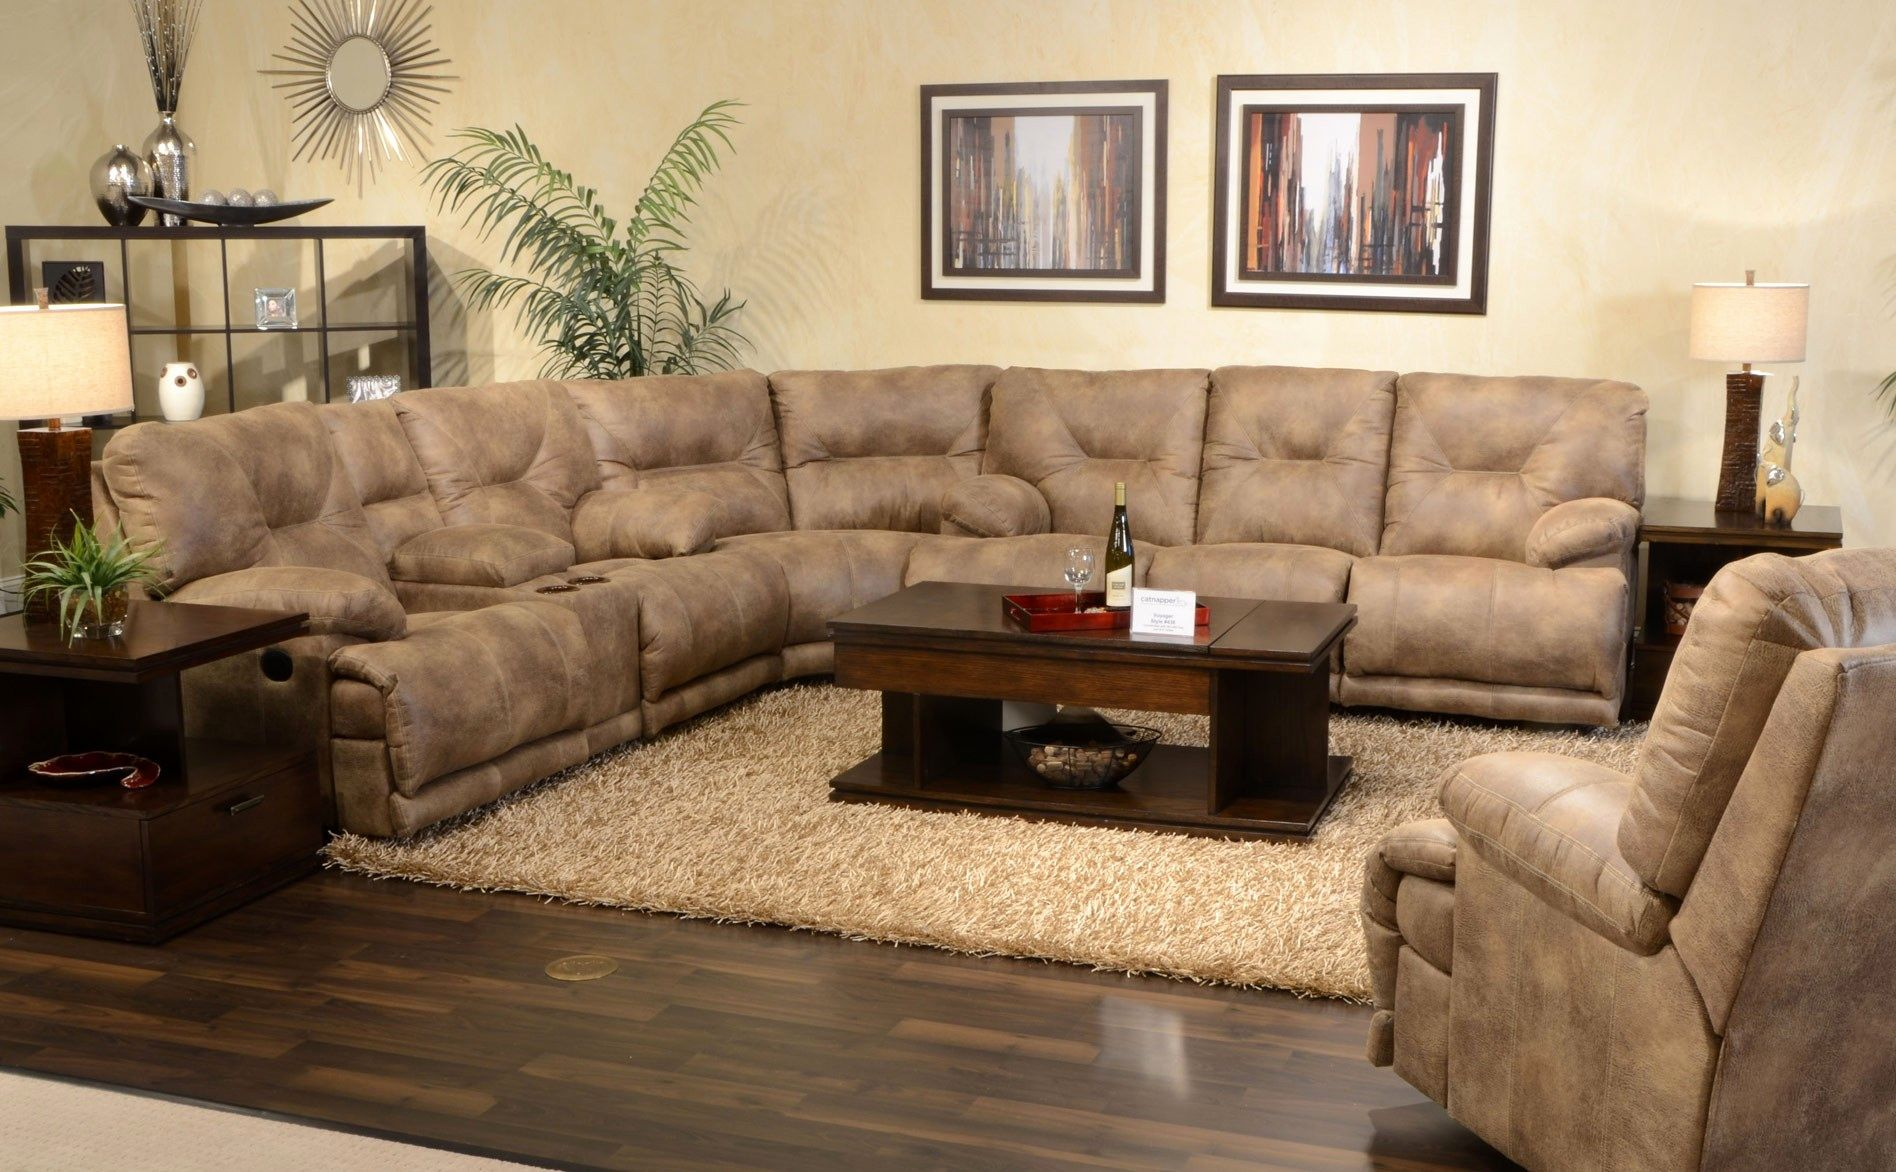 Beautiful Extra Large Sectional Sofas Photos Extra Large Sectional Sofas Beautiful Furniture Interesting Living Room Interior Using Lar Sectional Muebles Hogar